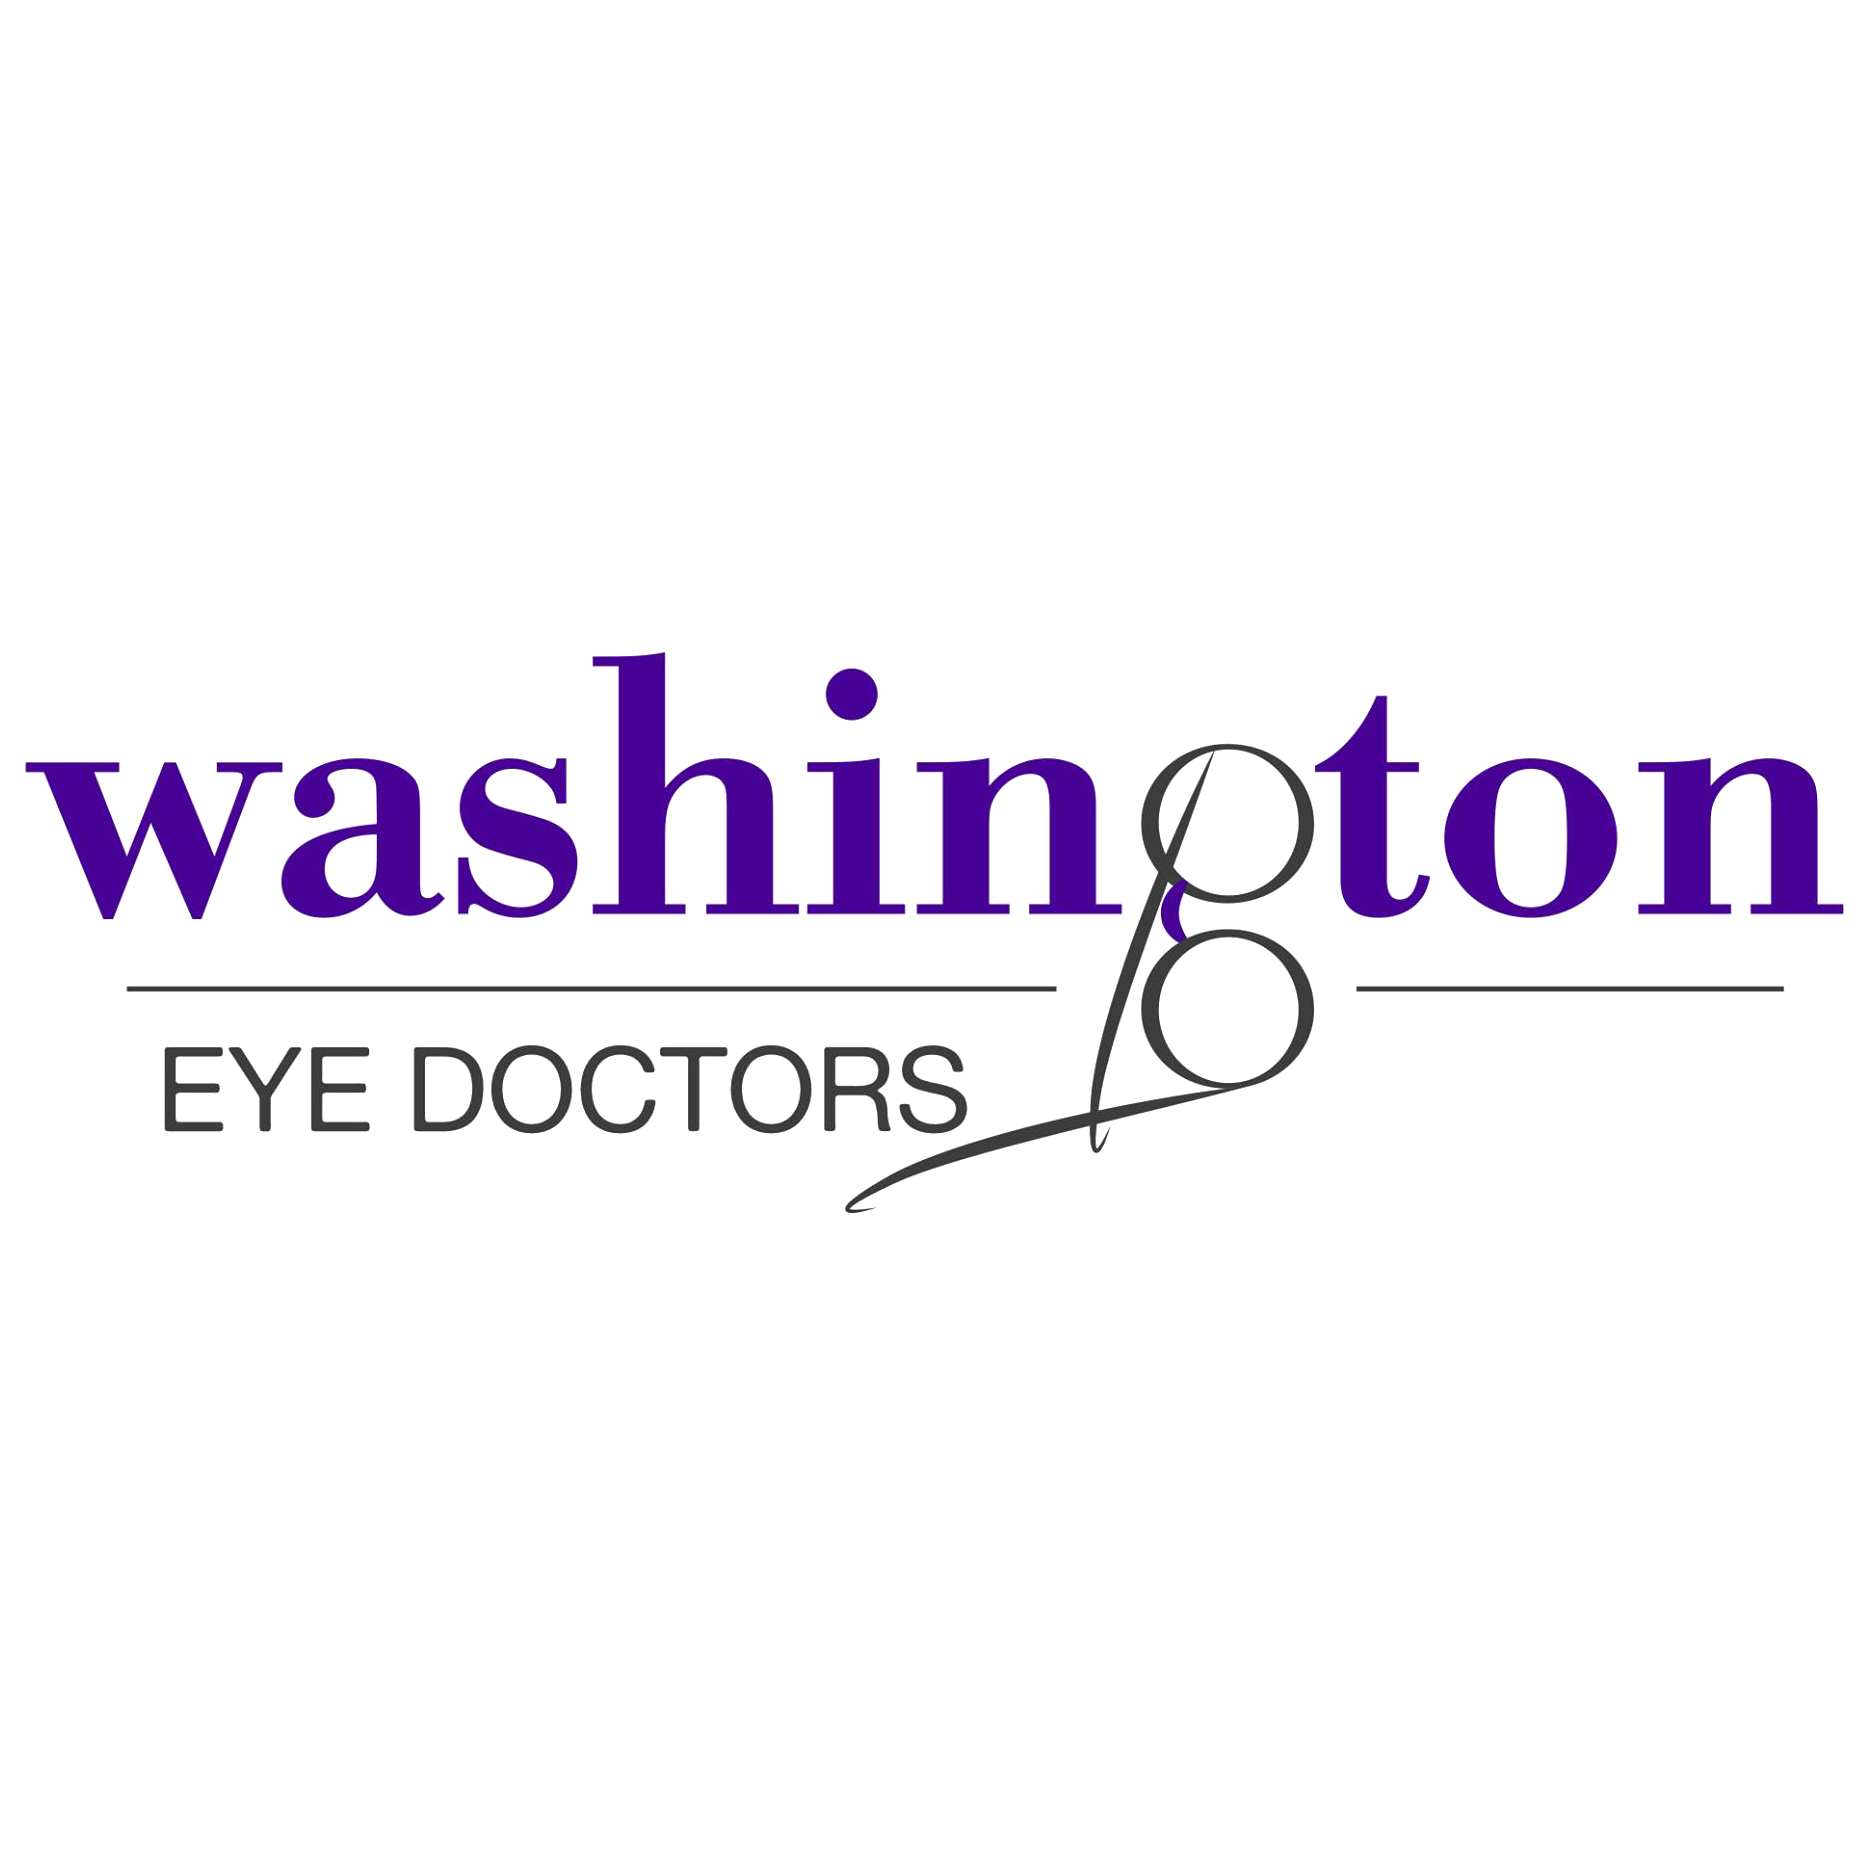 Washington Eye Doctors